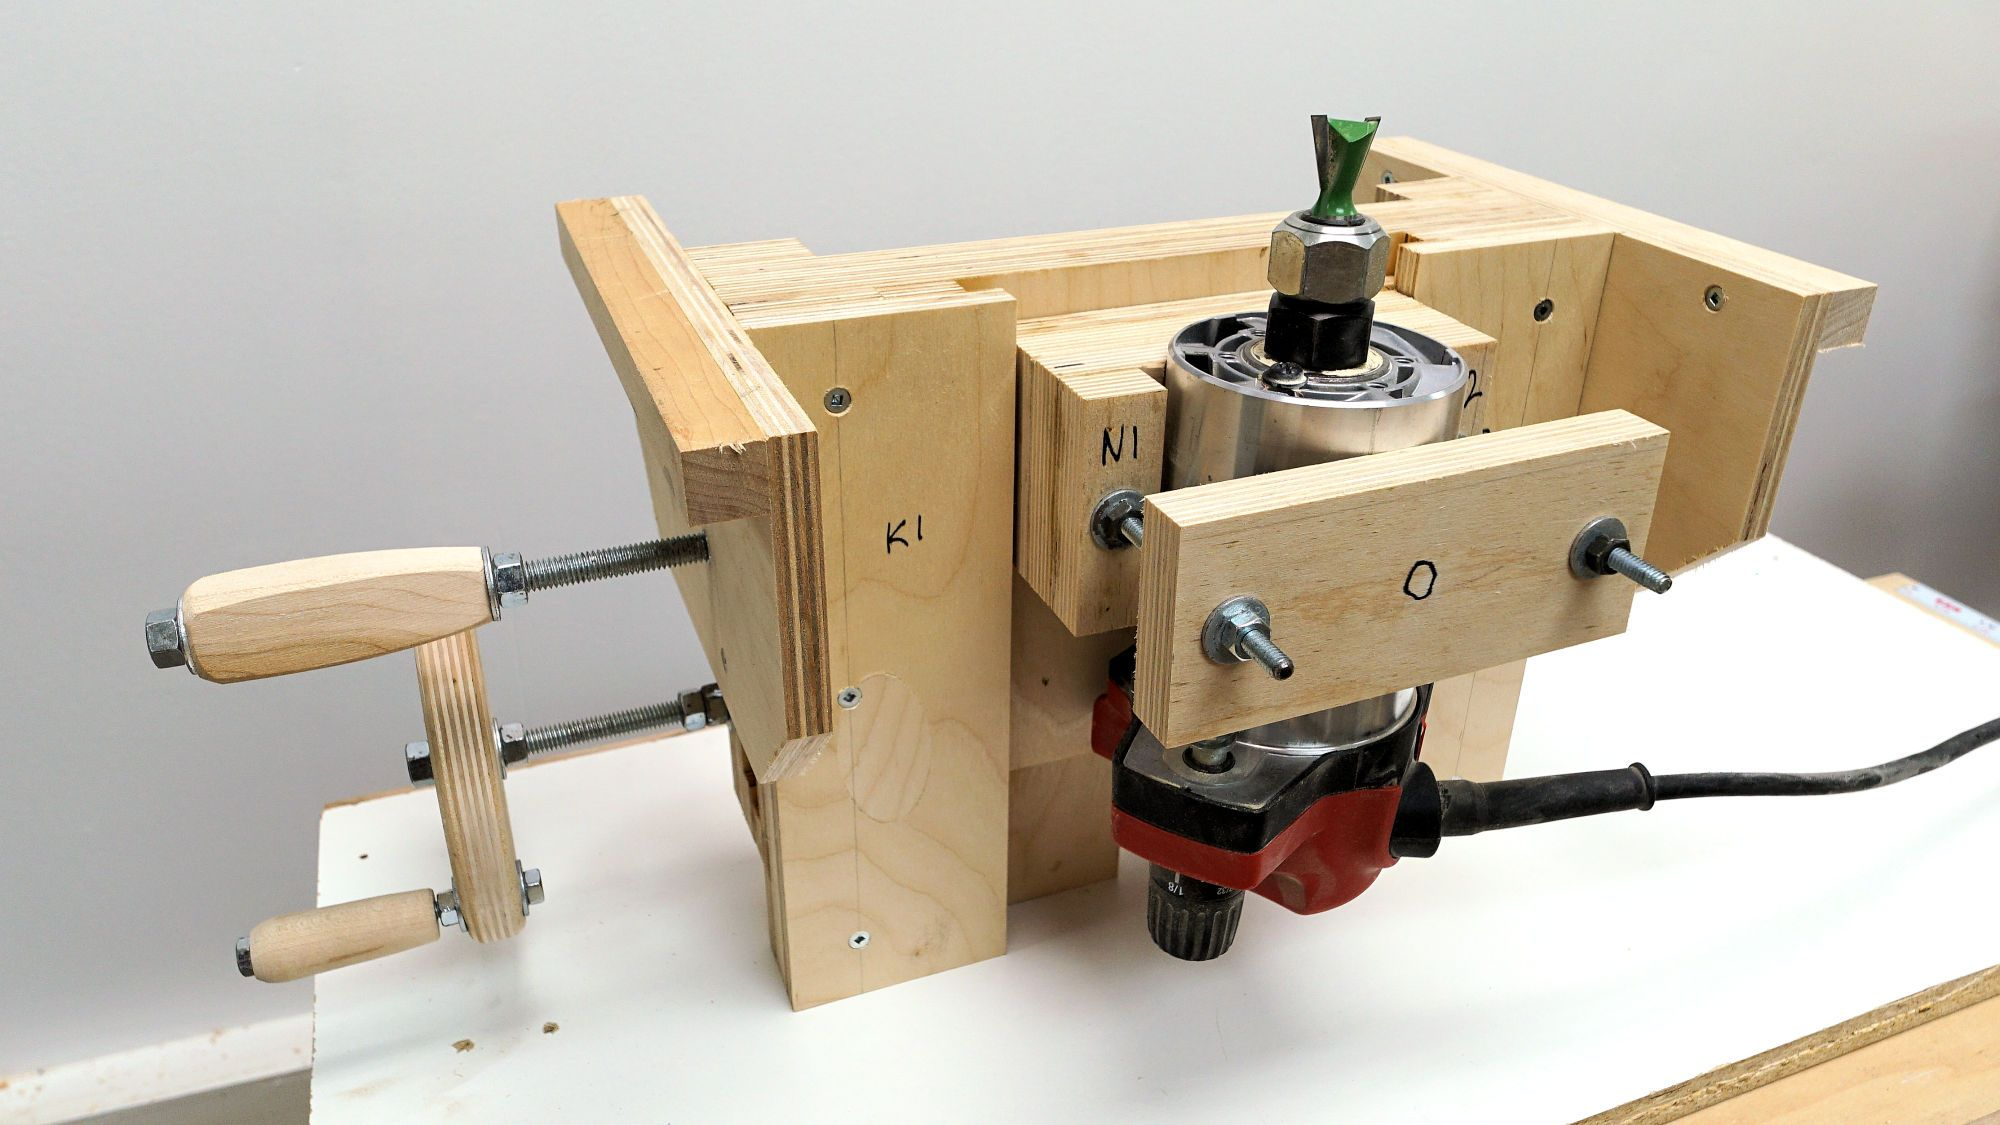 Making A Precision Router Lift From The Easy To Follow Plans